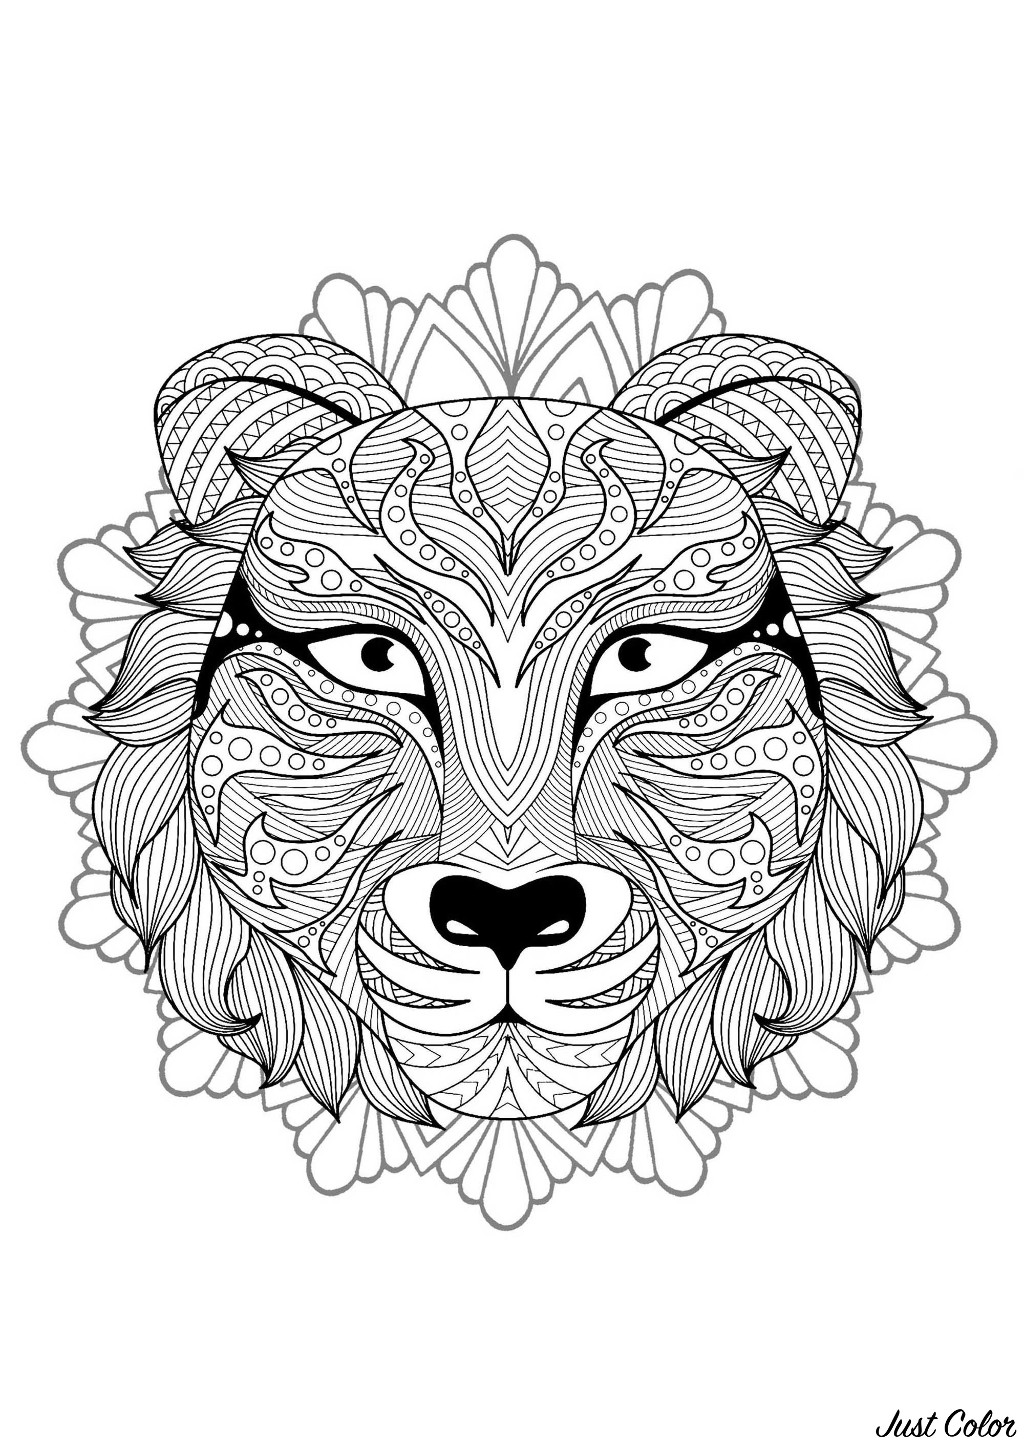 Mandala to color with magnificent Tiger head and floral / rounded patterns in background